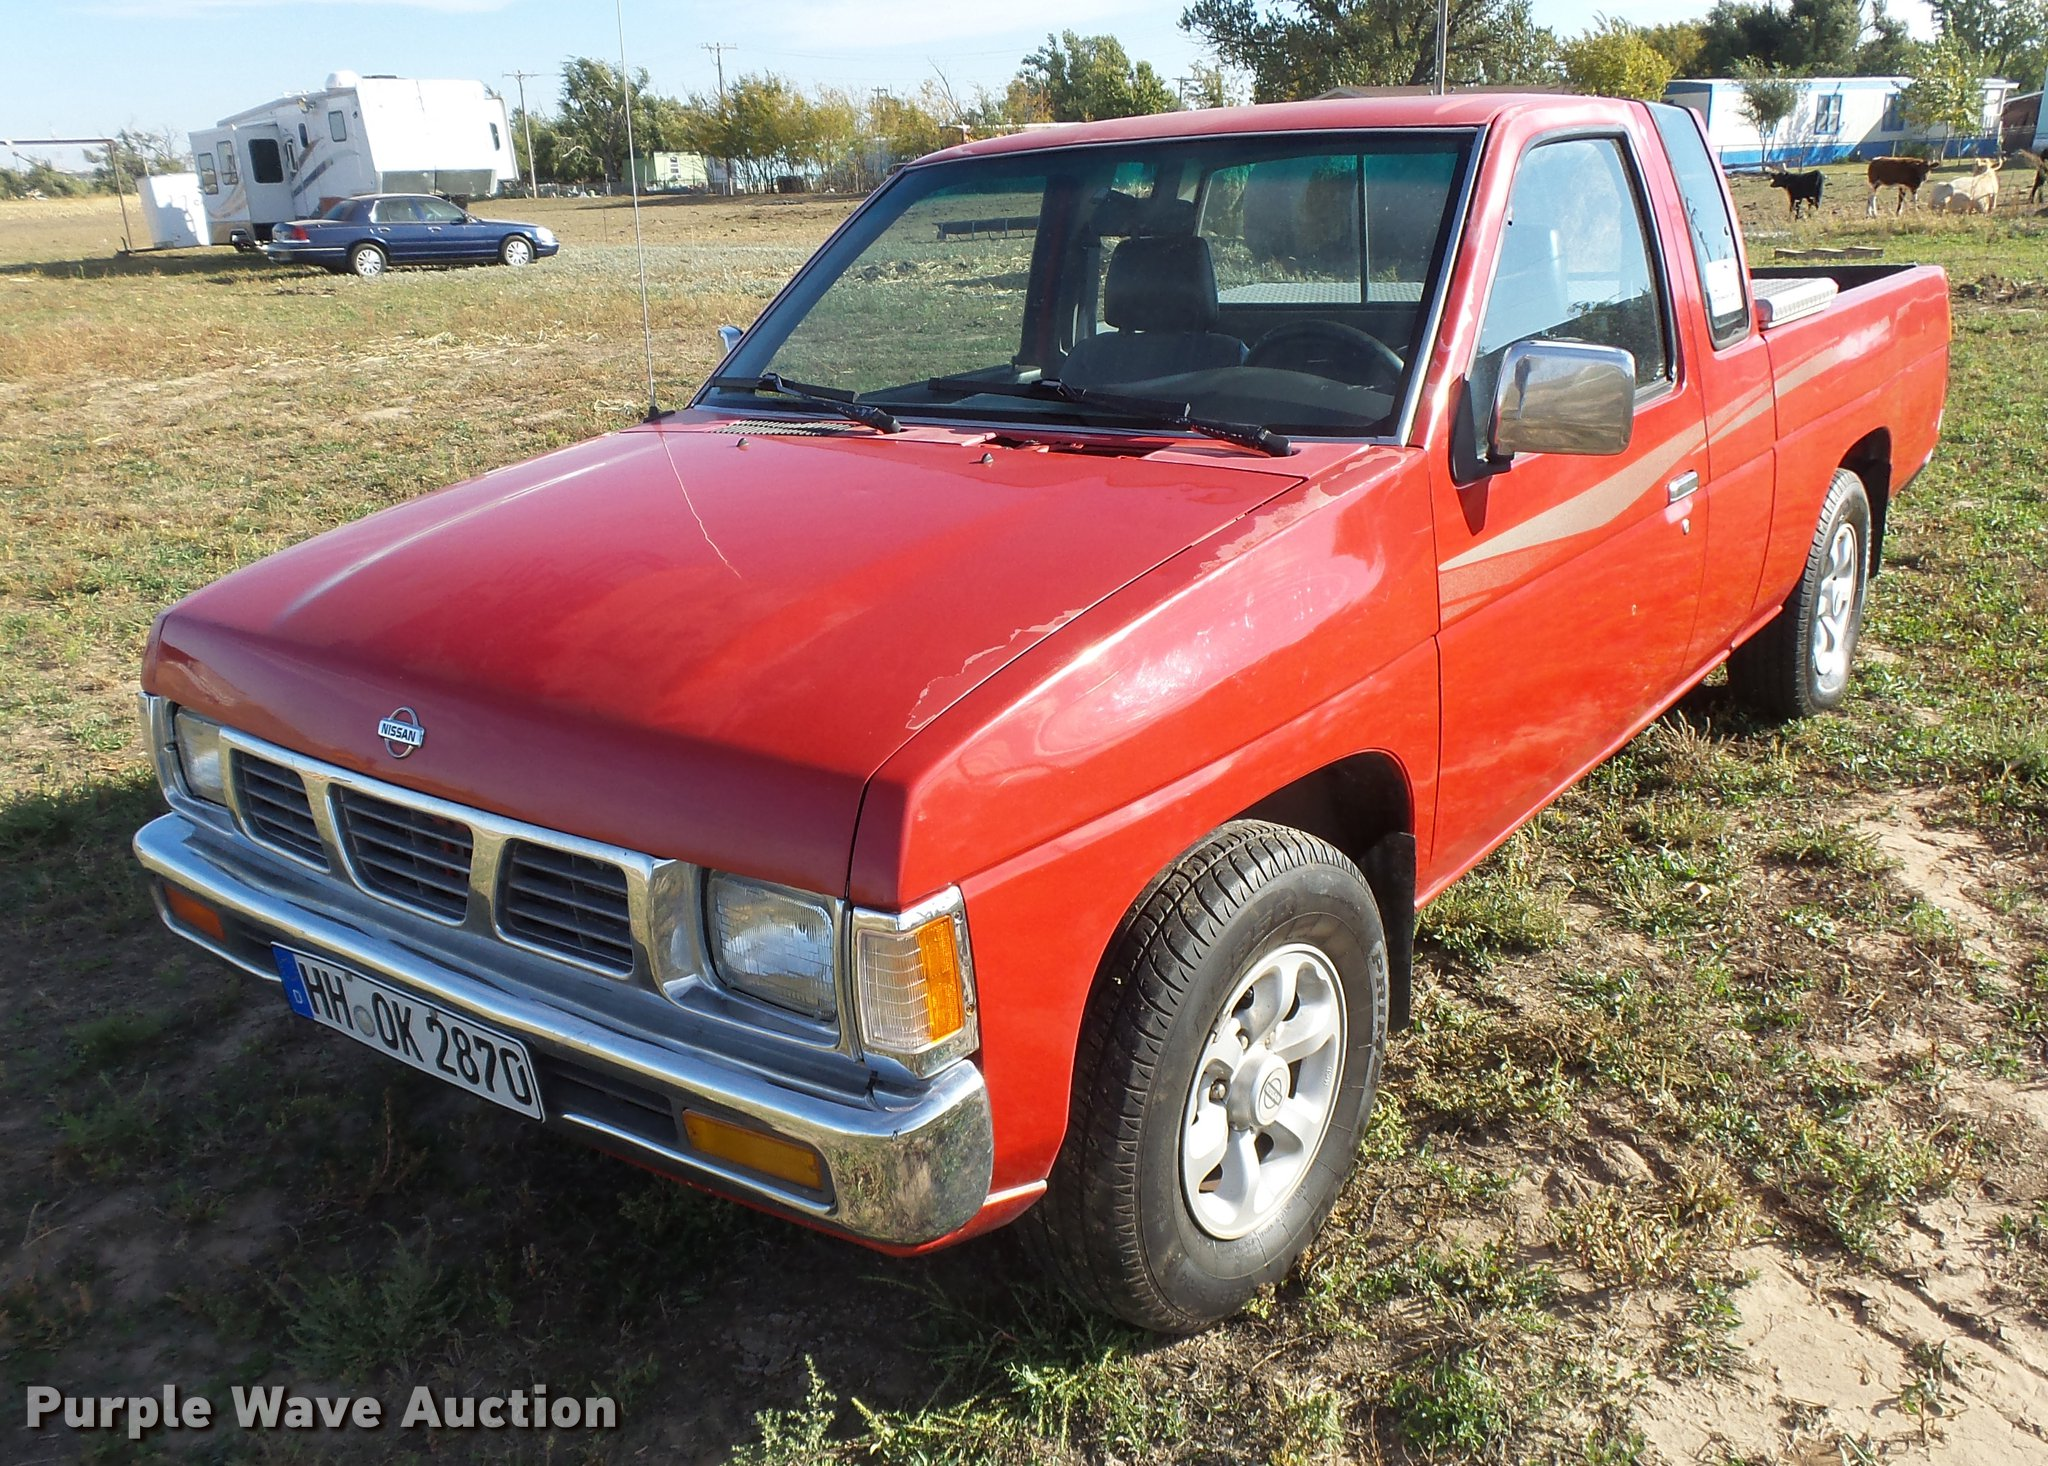 nissan pickup living urgent jpg sale for img title qatar commercial vehicles vehicle